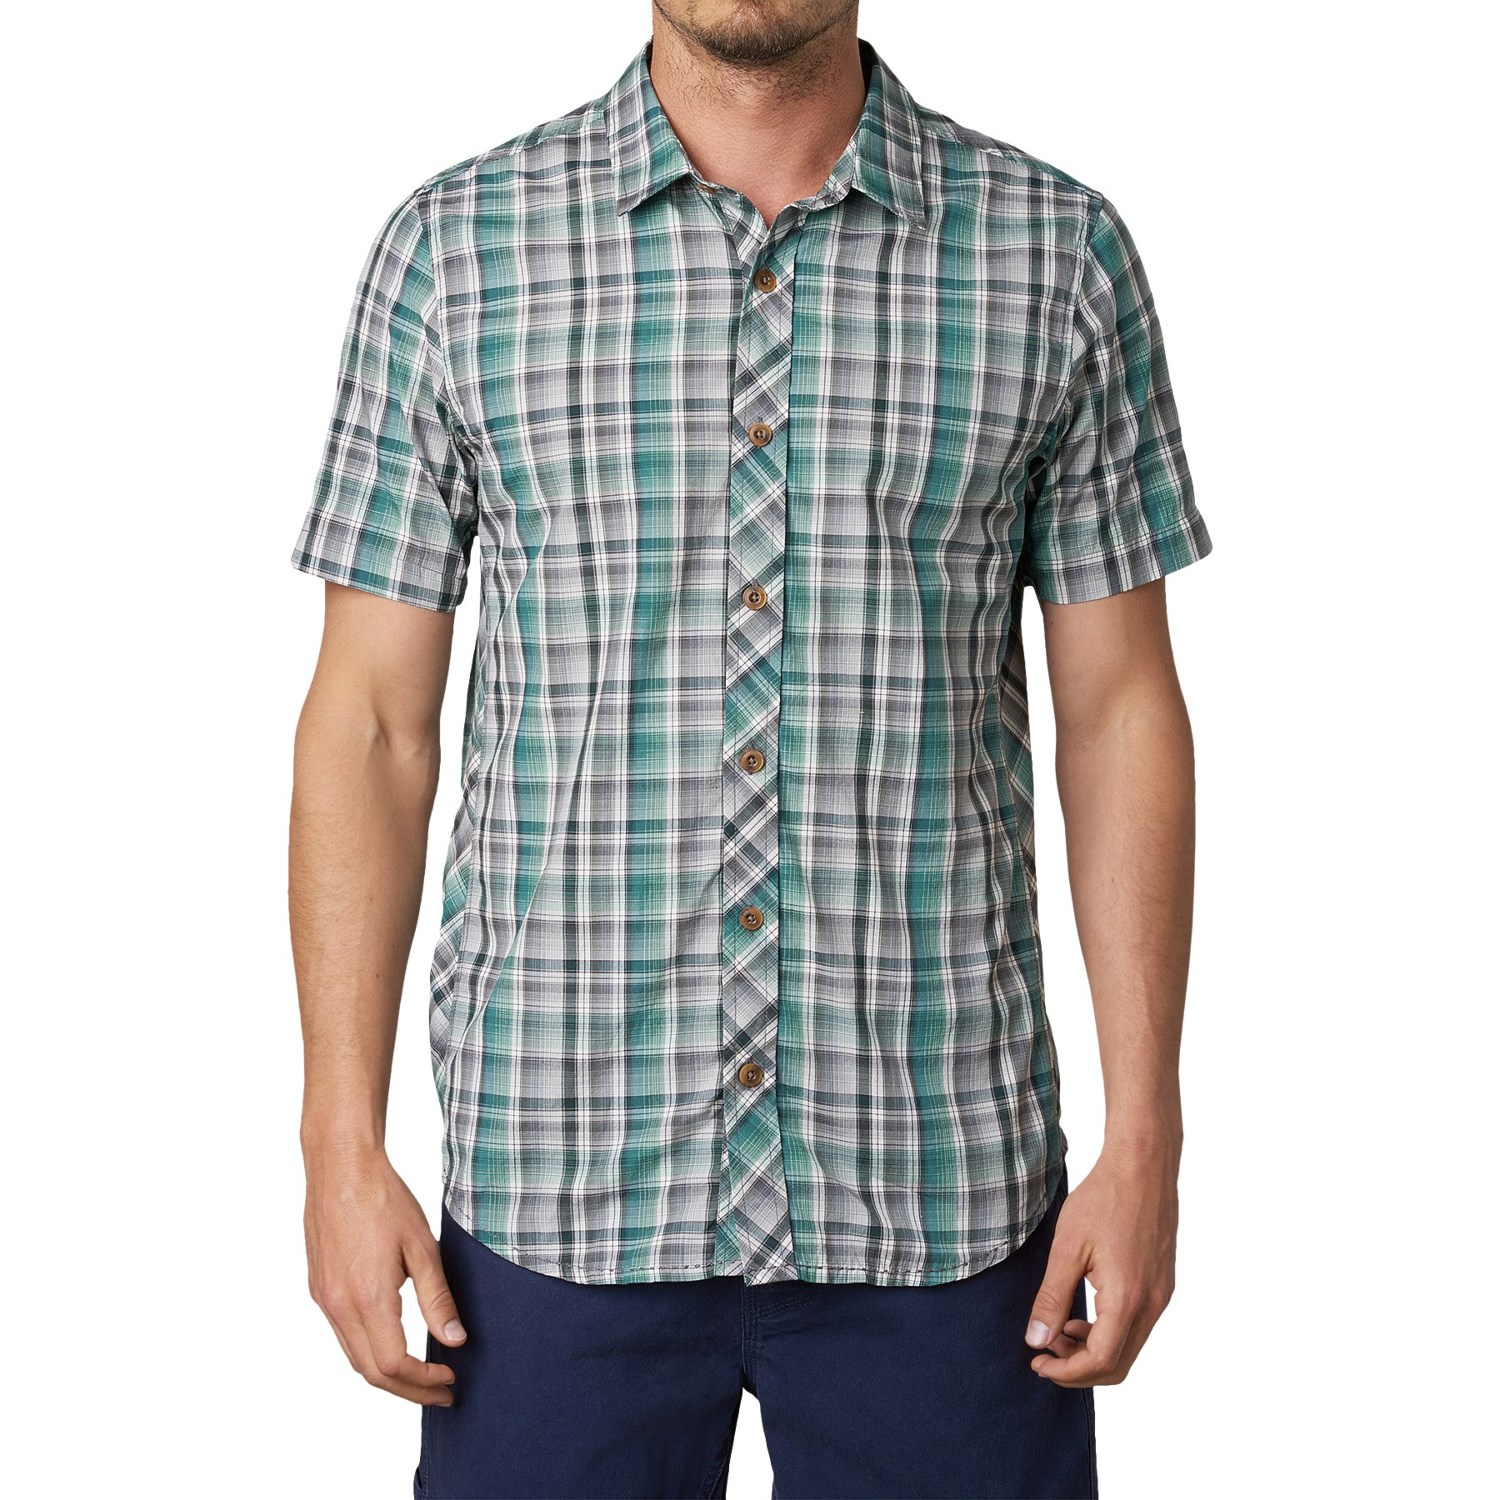 Find great deals on eBay for slim fit shirt short sleeve. Shop with confidence.